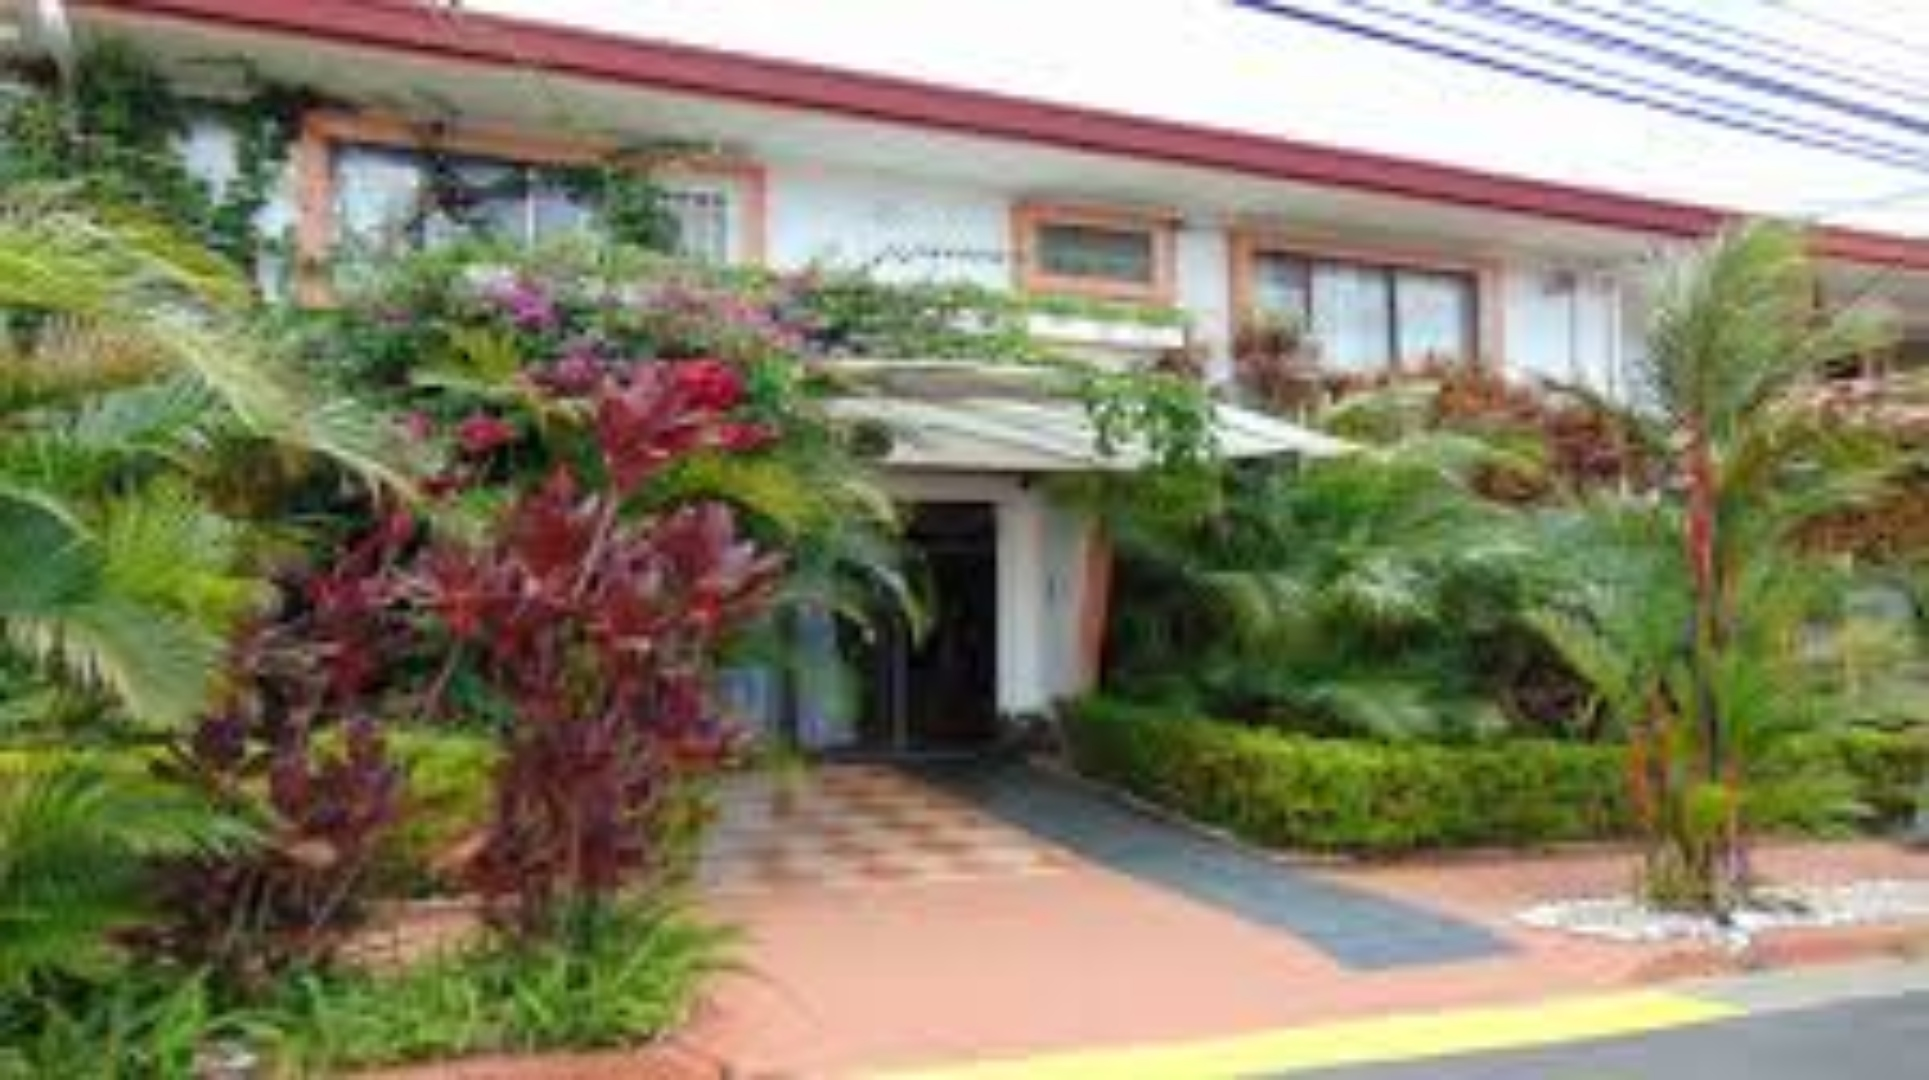 A house with bushes in front of a building at Casa Lima Bed & Breakfast.